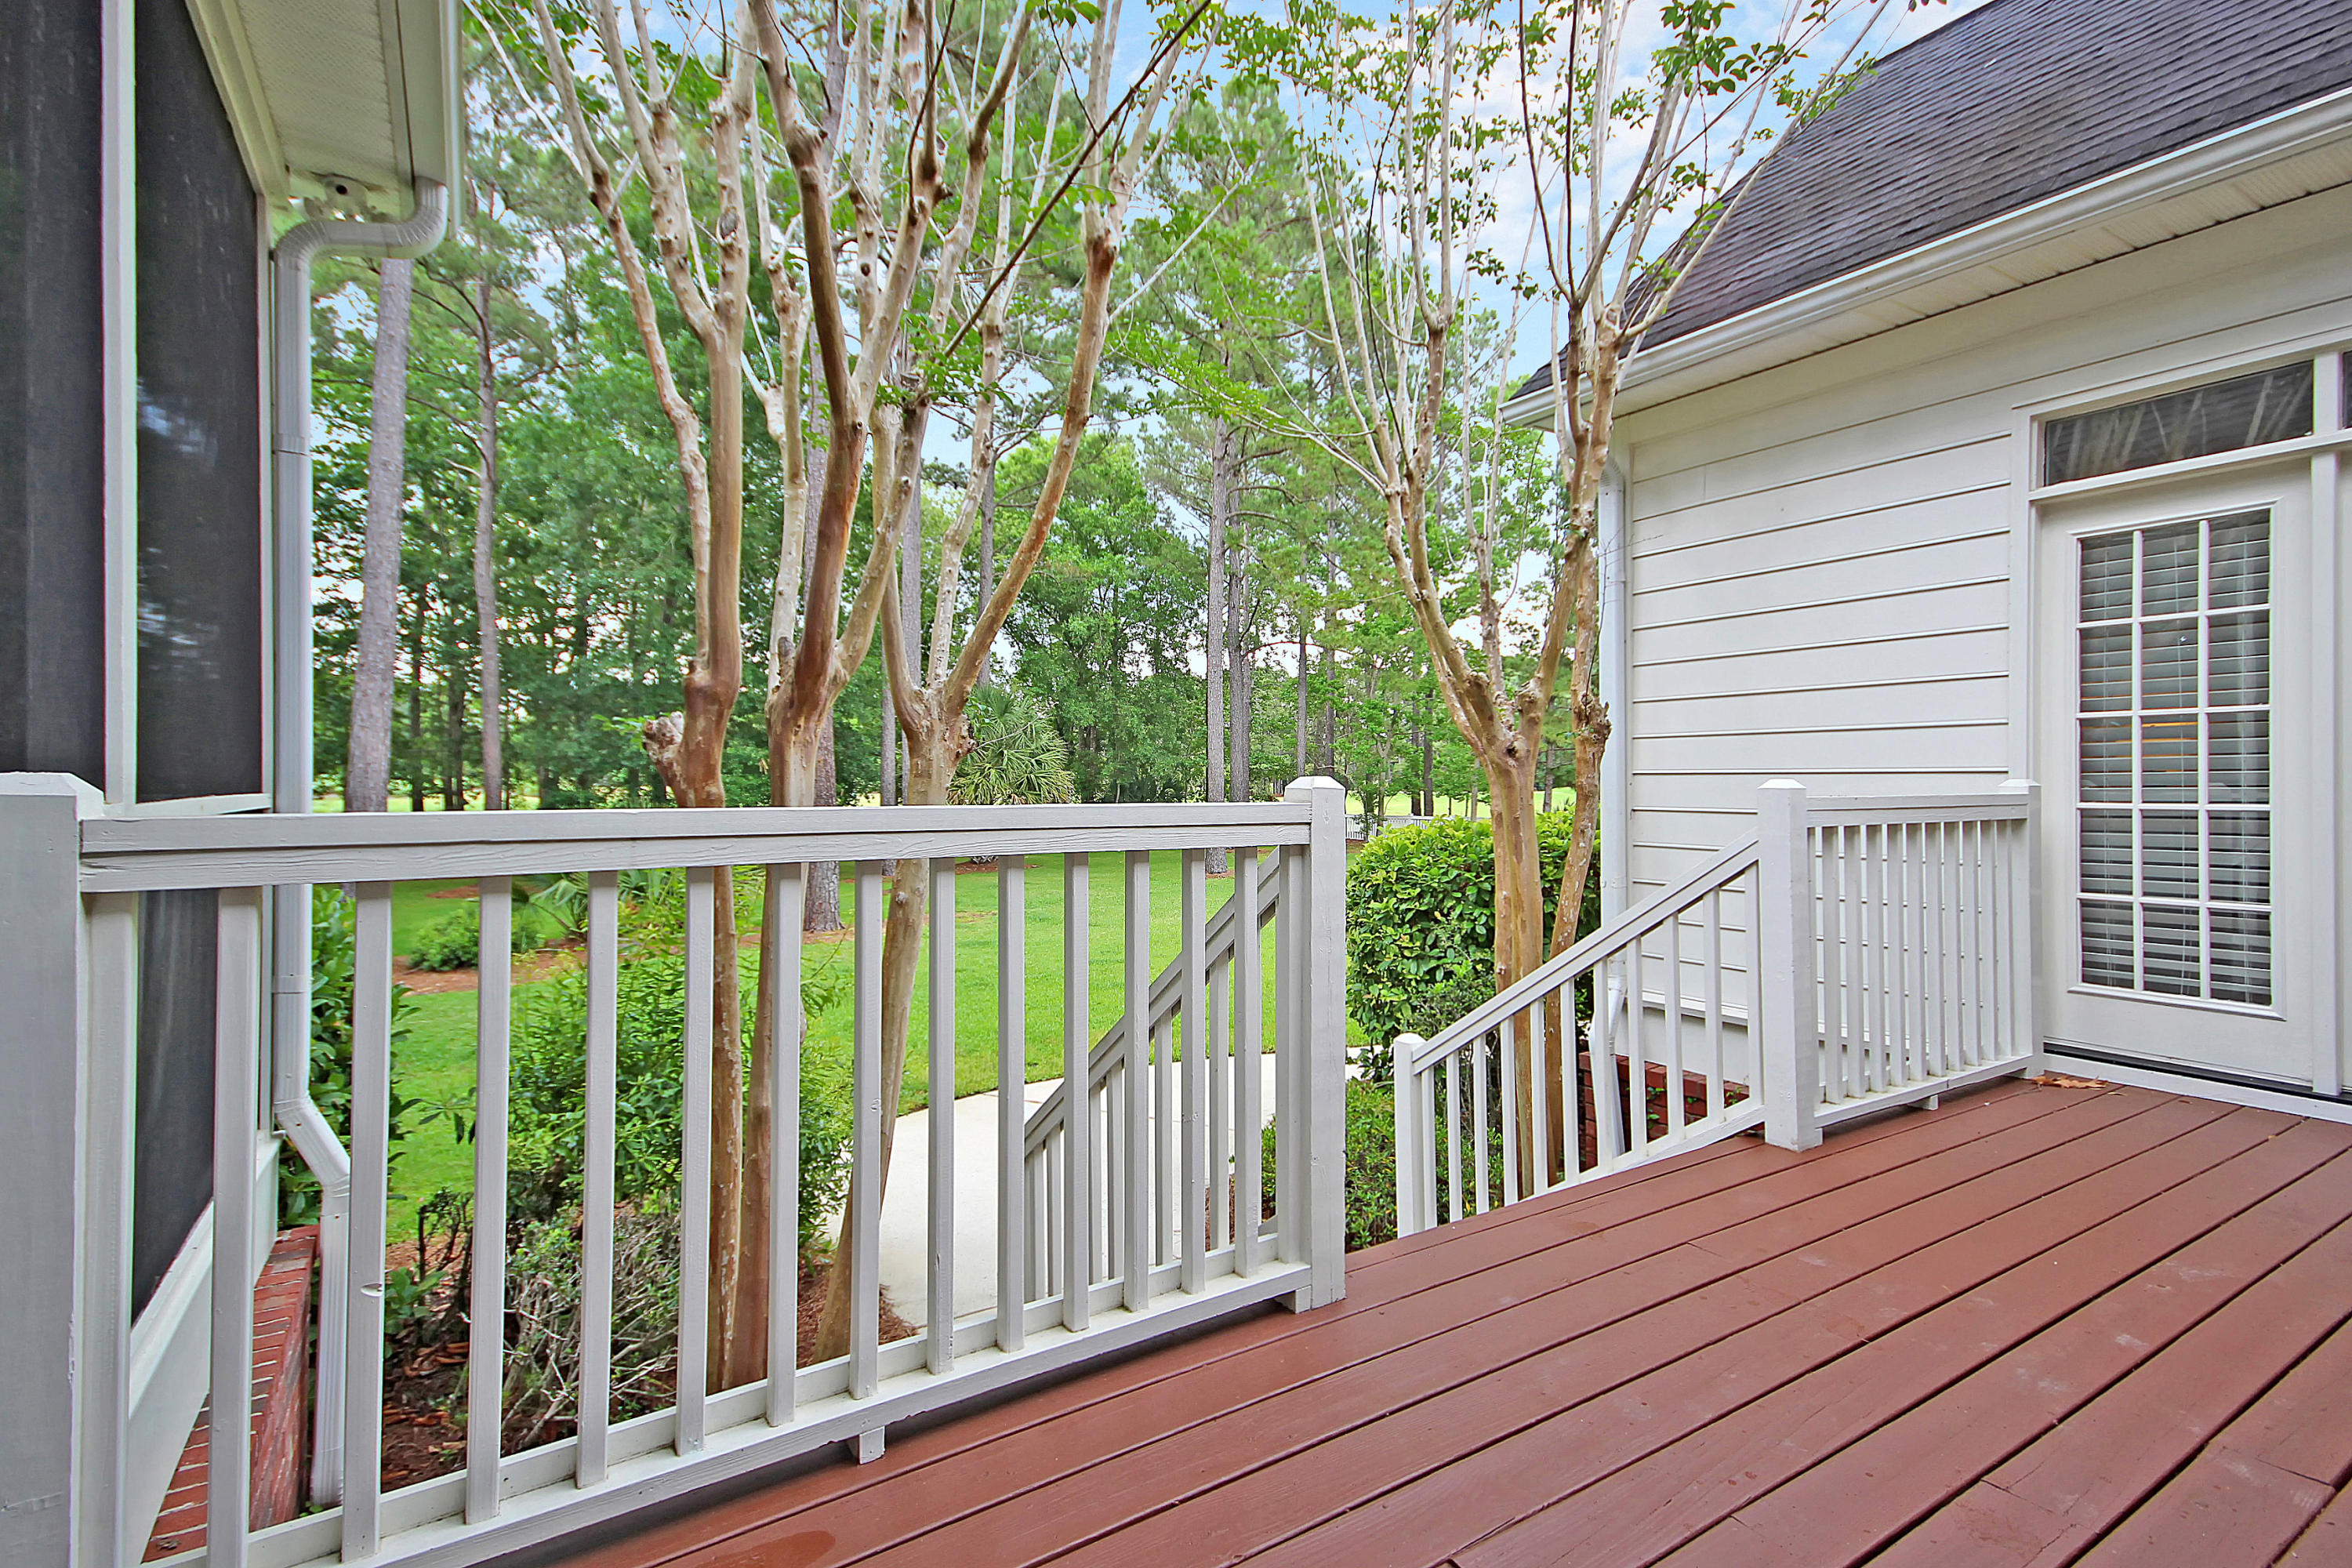 Dunes West Homes For Sale - 1829 Shell Ring, Mount Pleasant, SC - 7